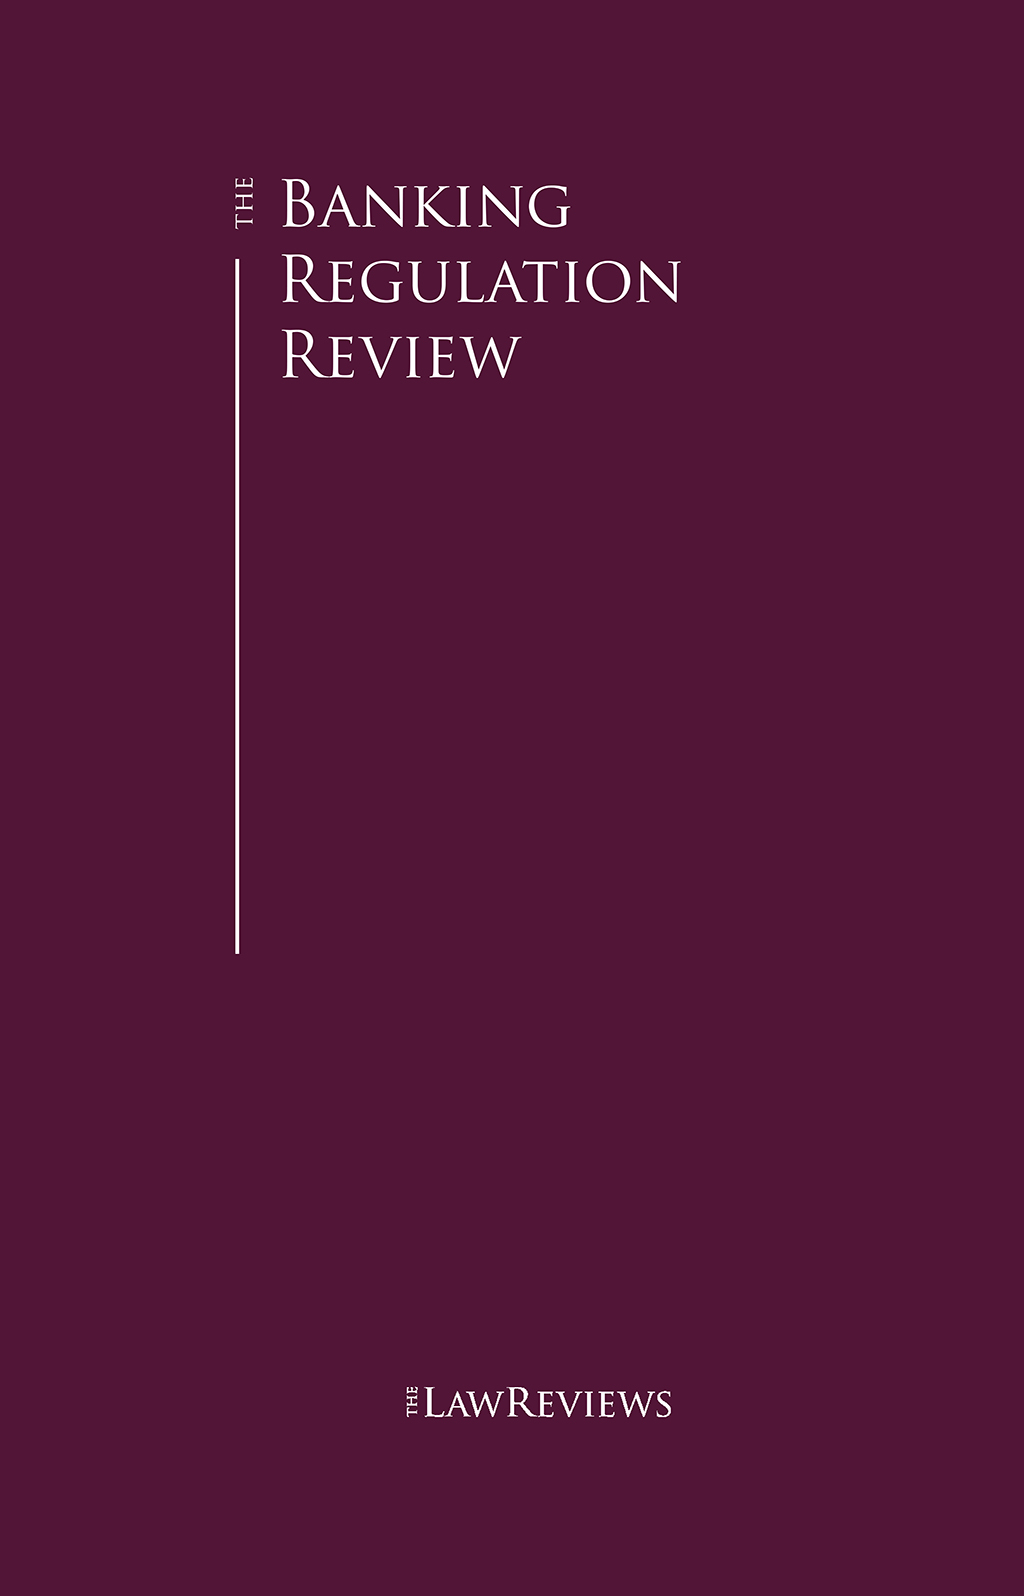 The Banking Regulation Review